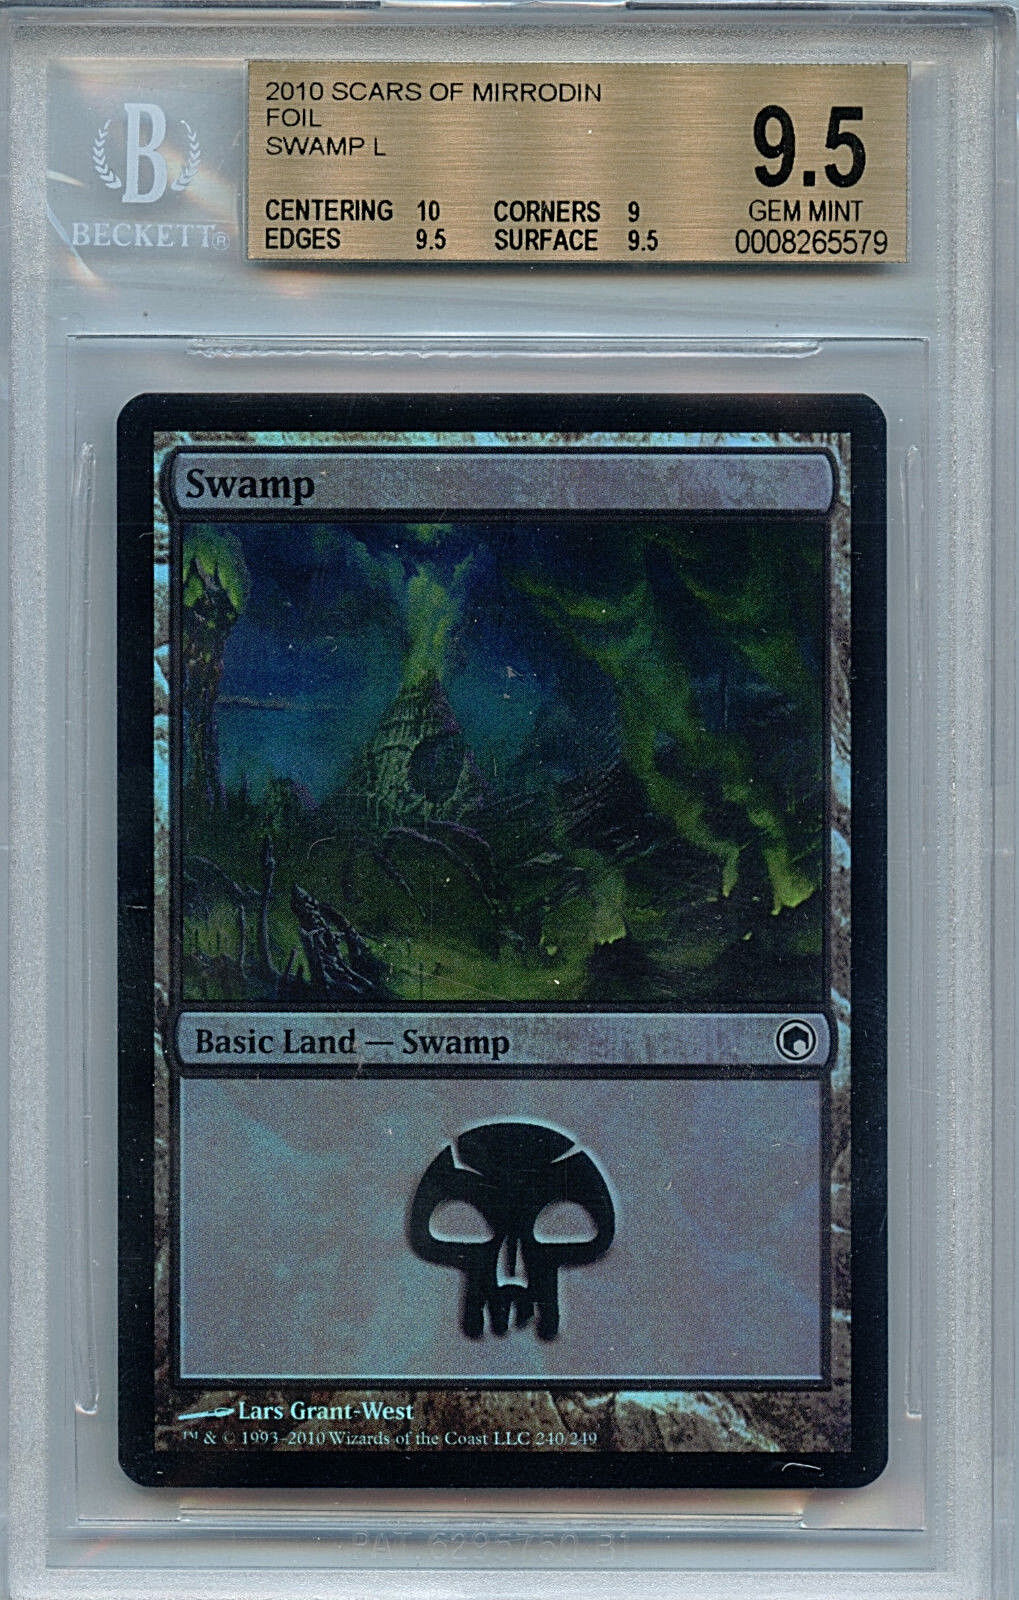 MTG Swamp Land BGS 9.5 Gem Mint Scars of of of Mirrodin Foil Magic Card 5579 Amricons 75a1b1